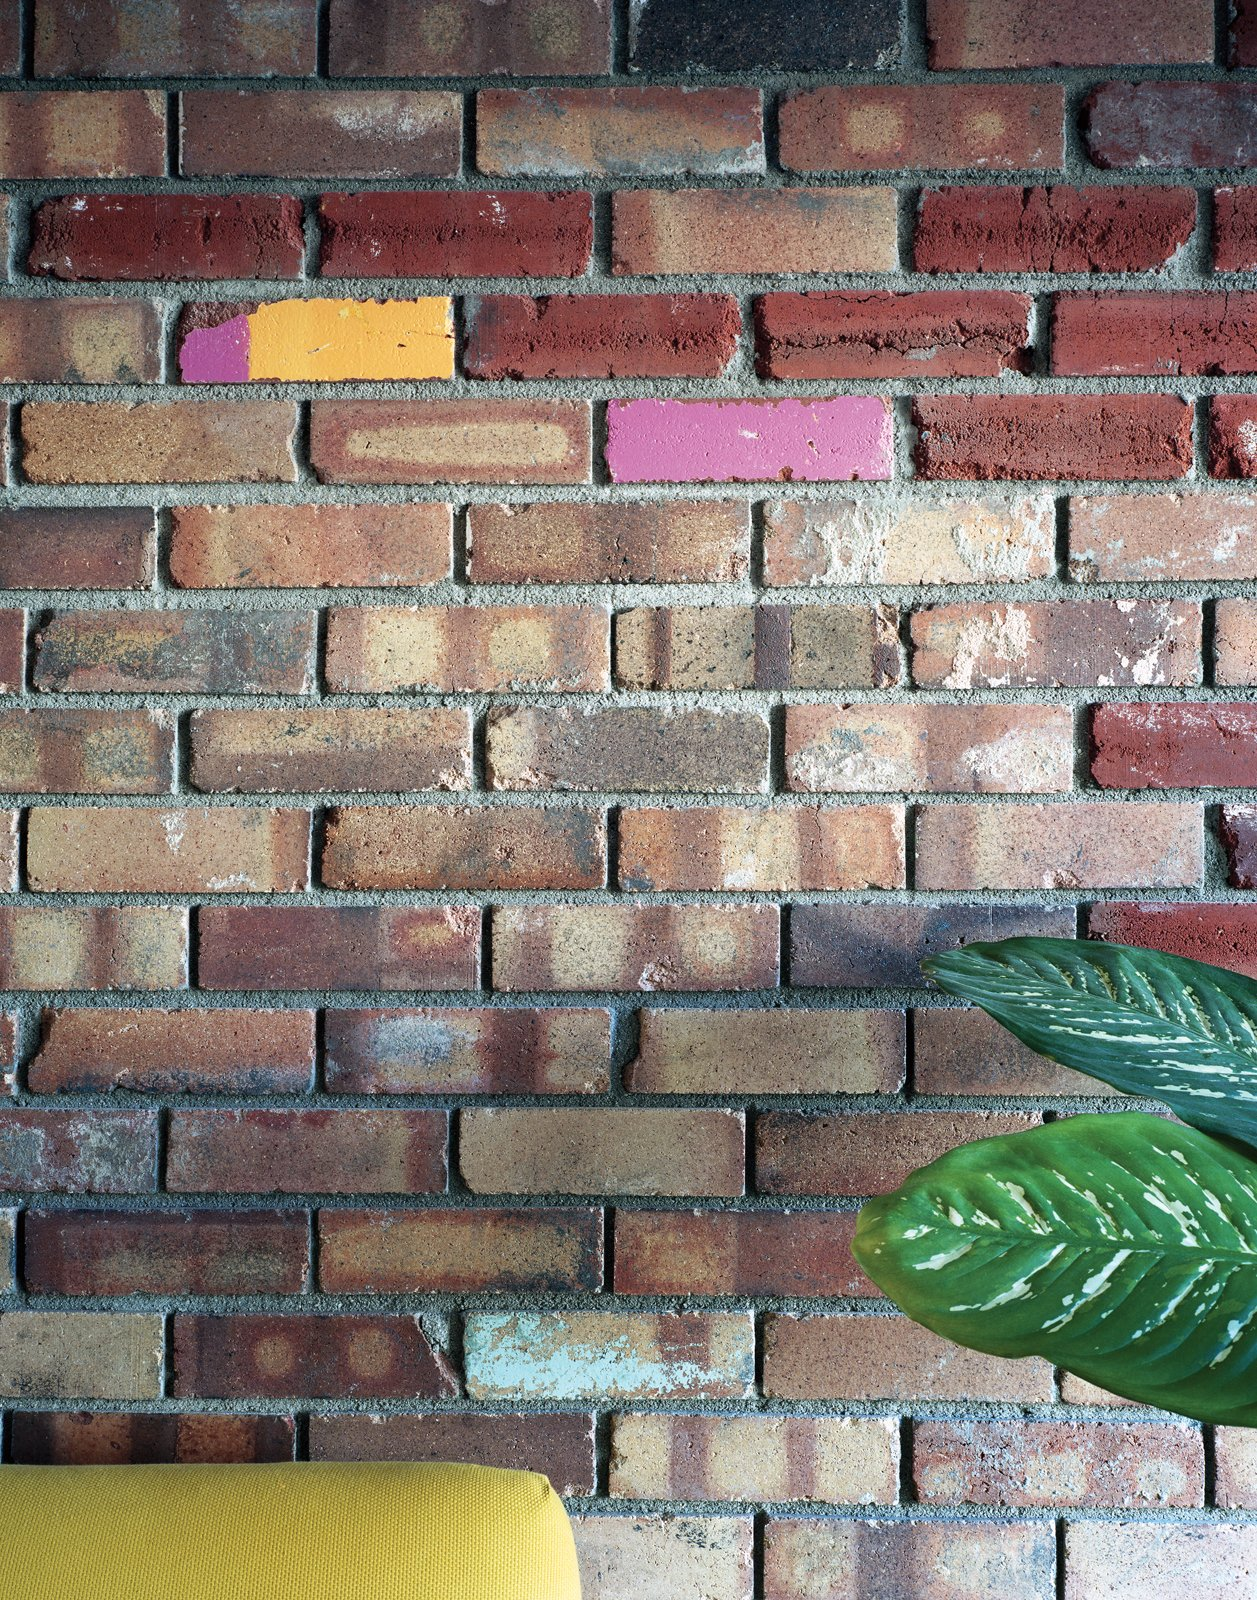 The house that came with the lot had suffered years of neglect, but its old bricks were readily salvageable. Moore combined these with others taken from local demolition yards, piecing together beautiful, two-tone walls flecked with brightly painted pink, orange, lime green, and white bricks salvaged from a Denver elementary school.  Colorful Intentions by Meg Dwyer from Denver's Energy Efficient  Home